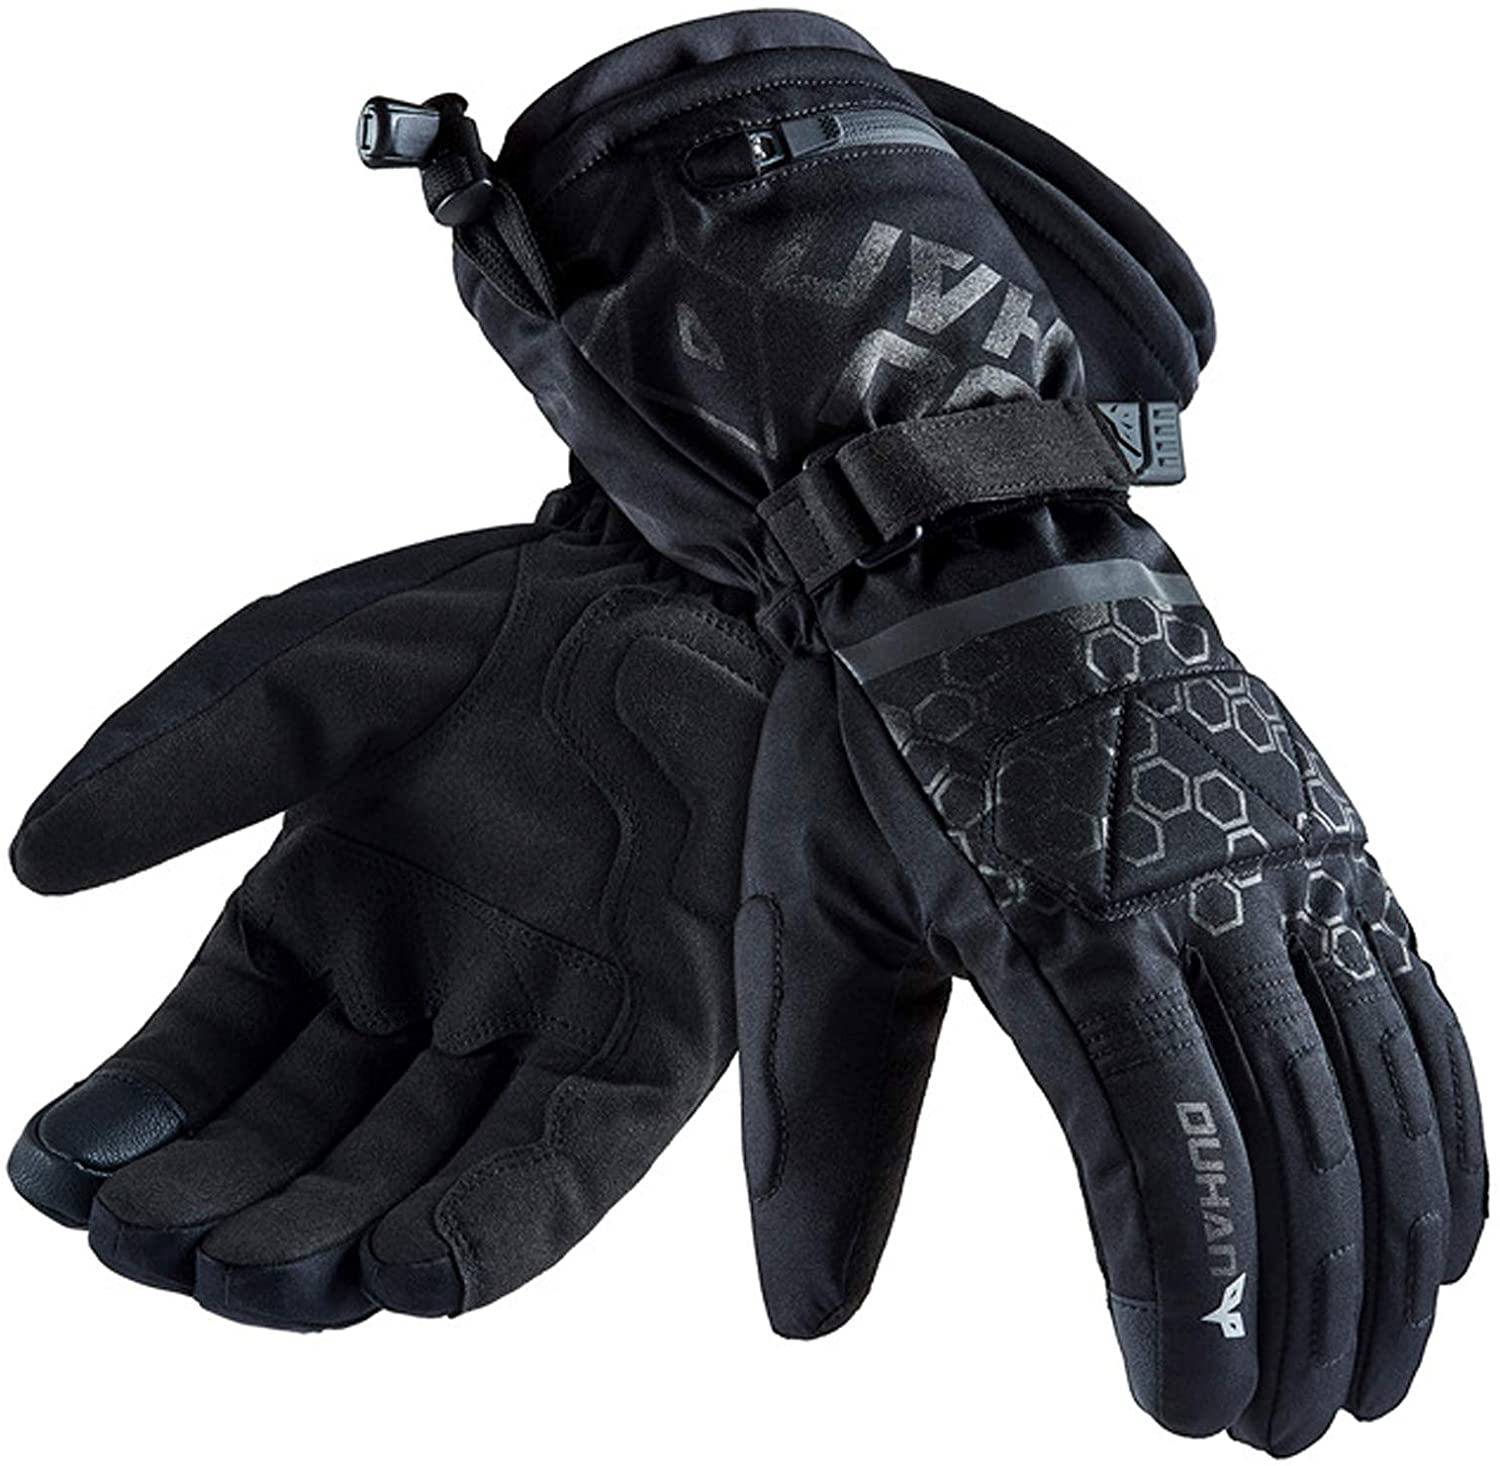 Heated Gloves with Rechargeable Battery,Waterproof Electric Heated Motorcycle Gloves for Outdoor